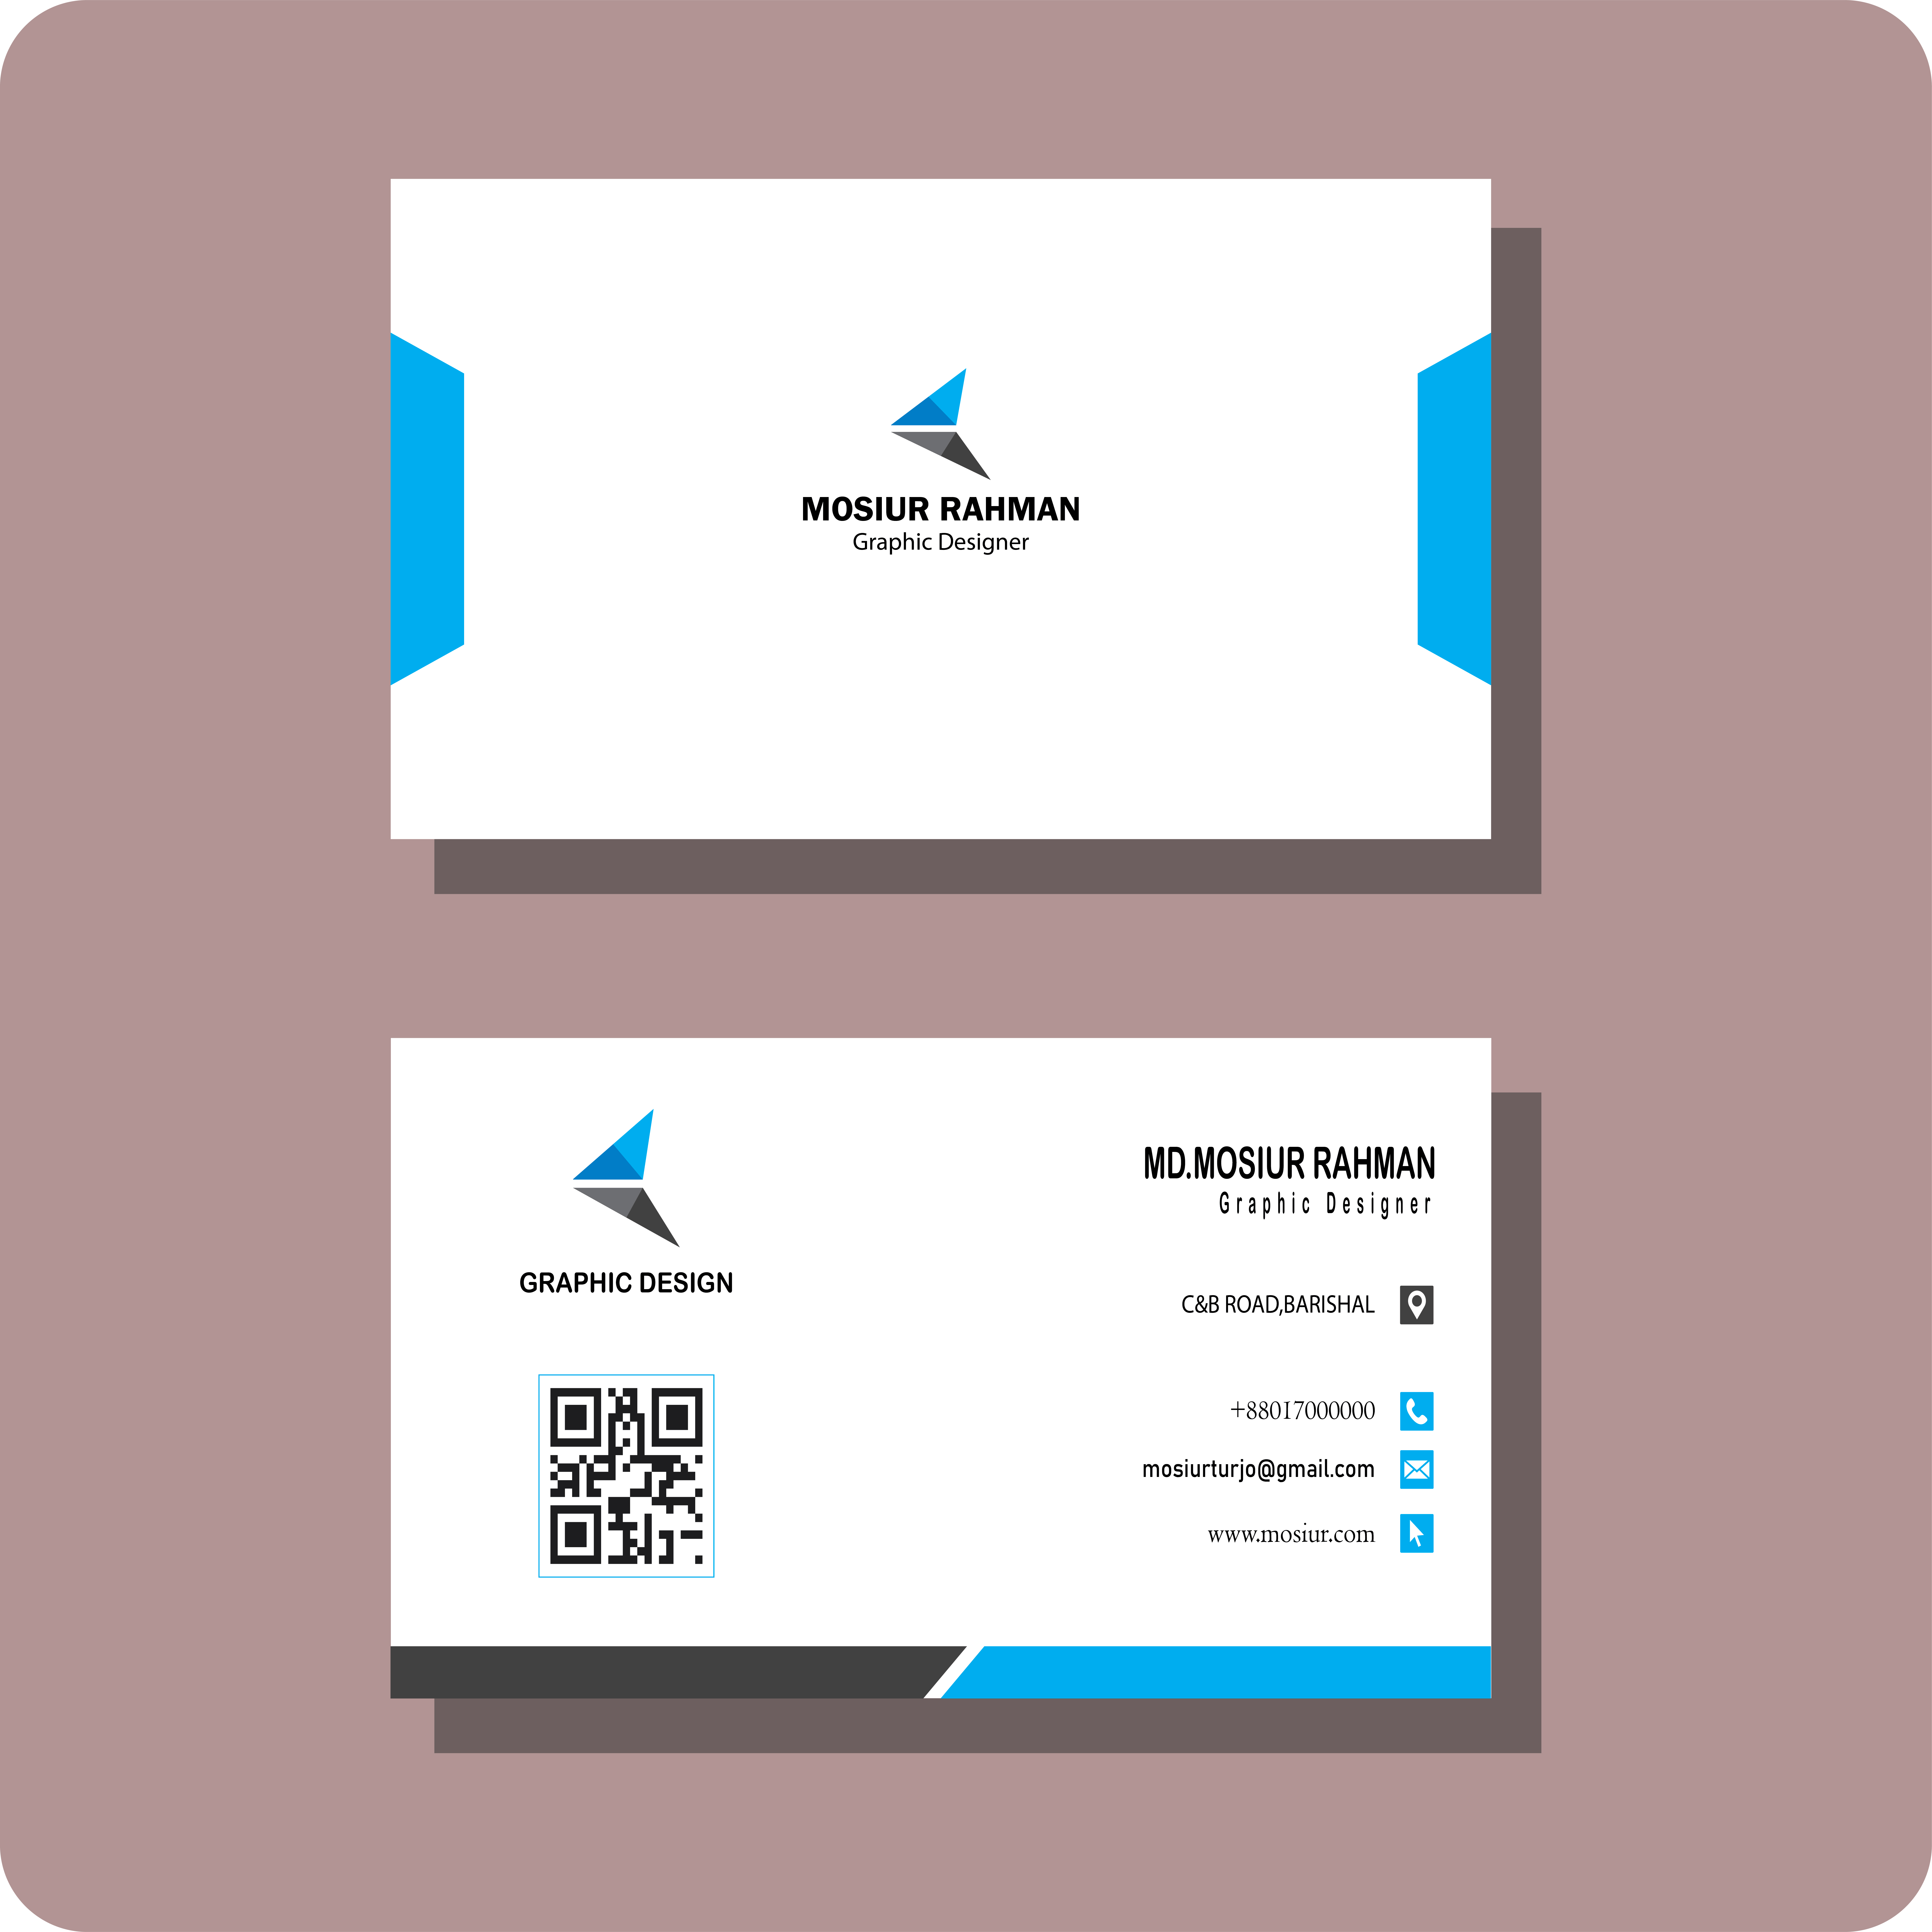 Business card design for you. Professonal business card design.